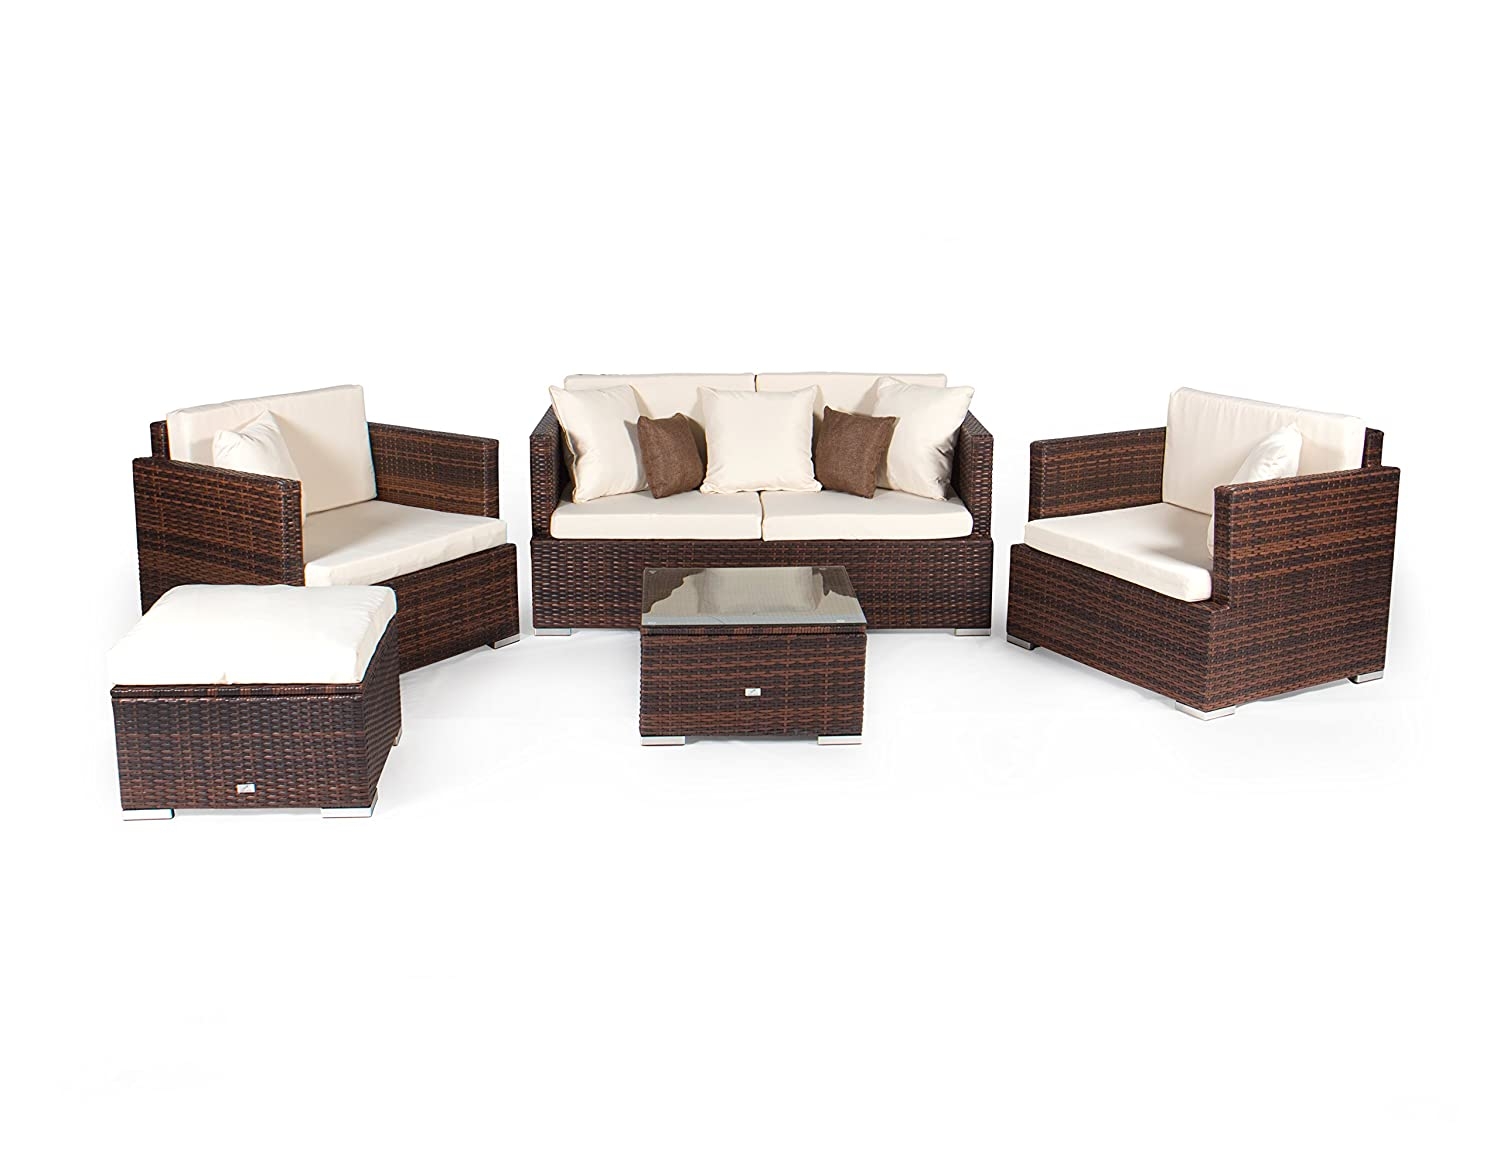 vanage gartenm bel set melbourne in rattan optik polyrattan loungem bel f r garten balkon. Black Bedroom Furniture Sets. Home Design Ideas